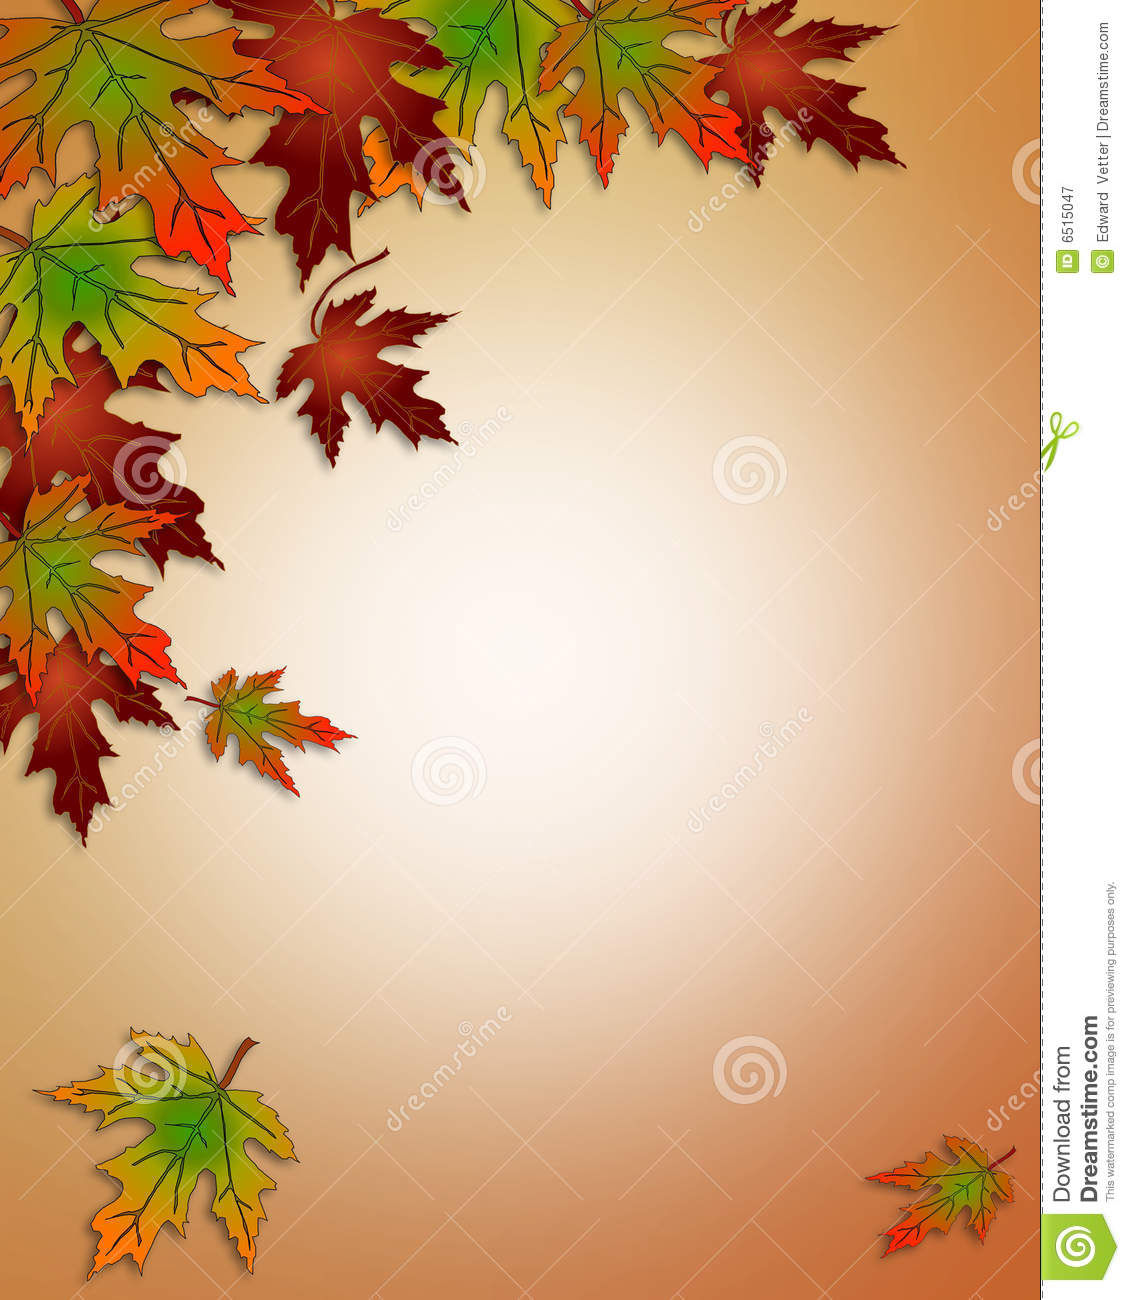 Autumn Fall Leaves Border Stock Illustration Image Of Harvest